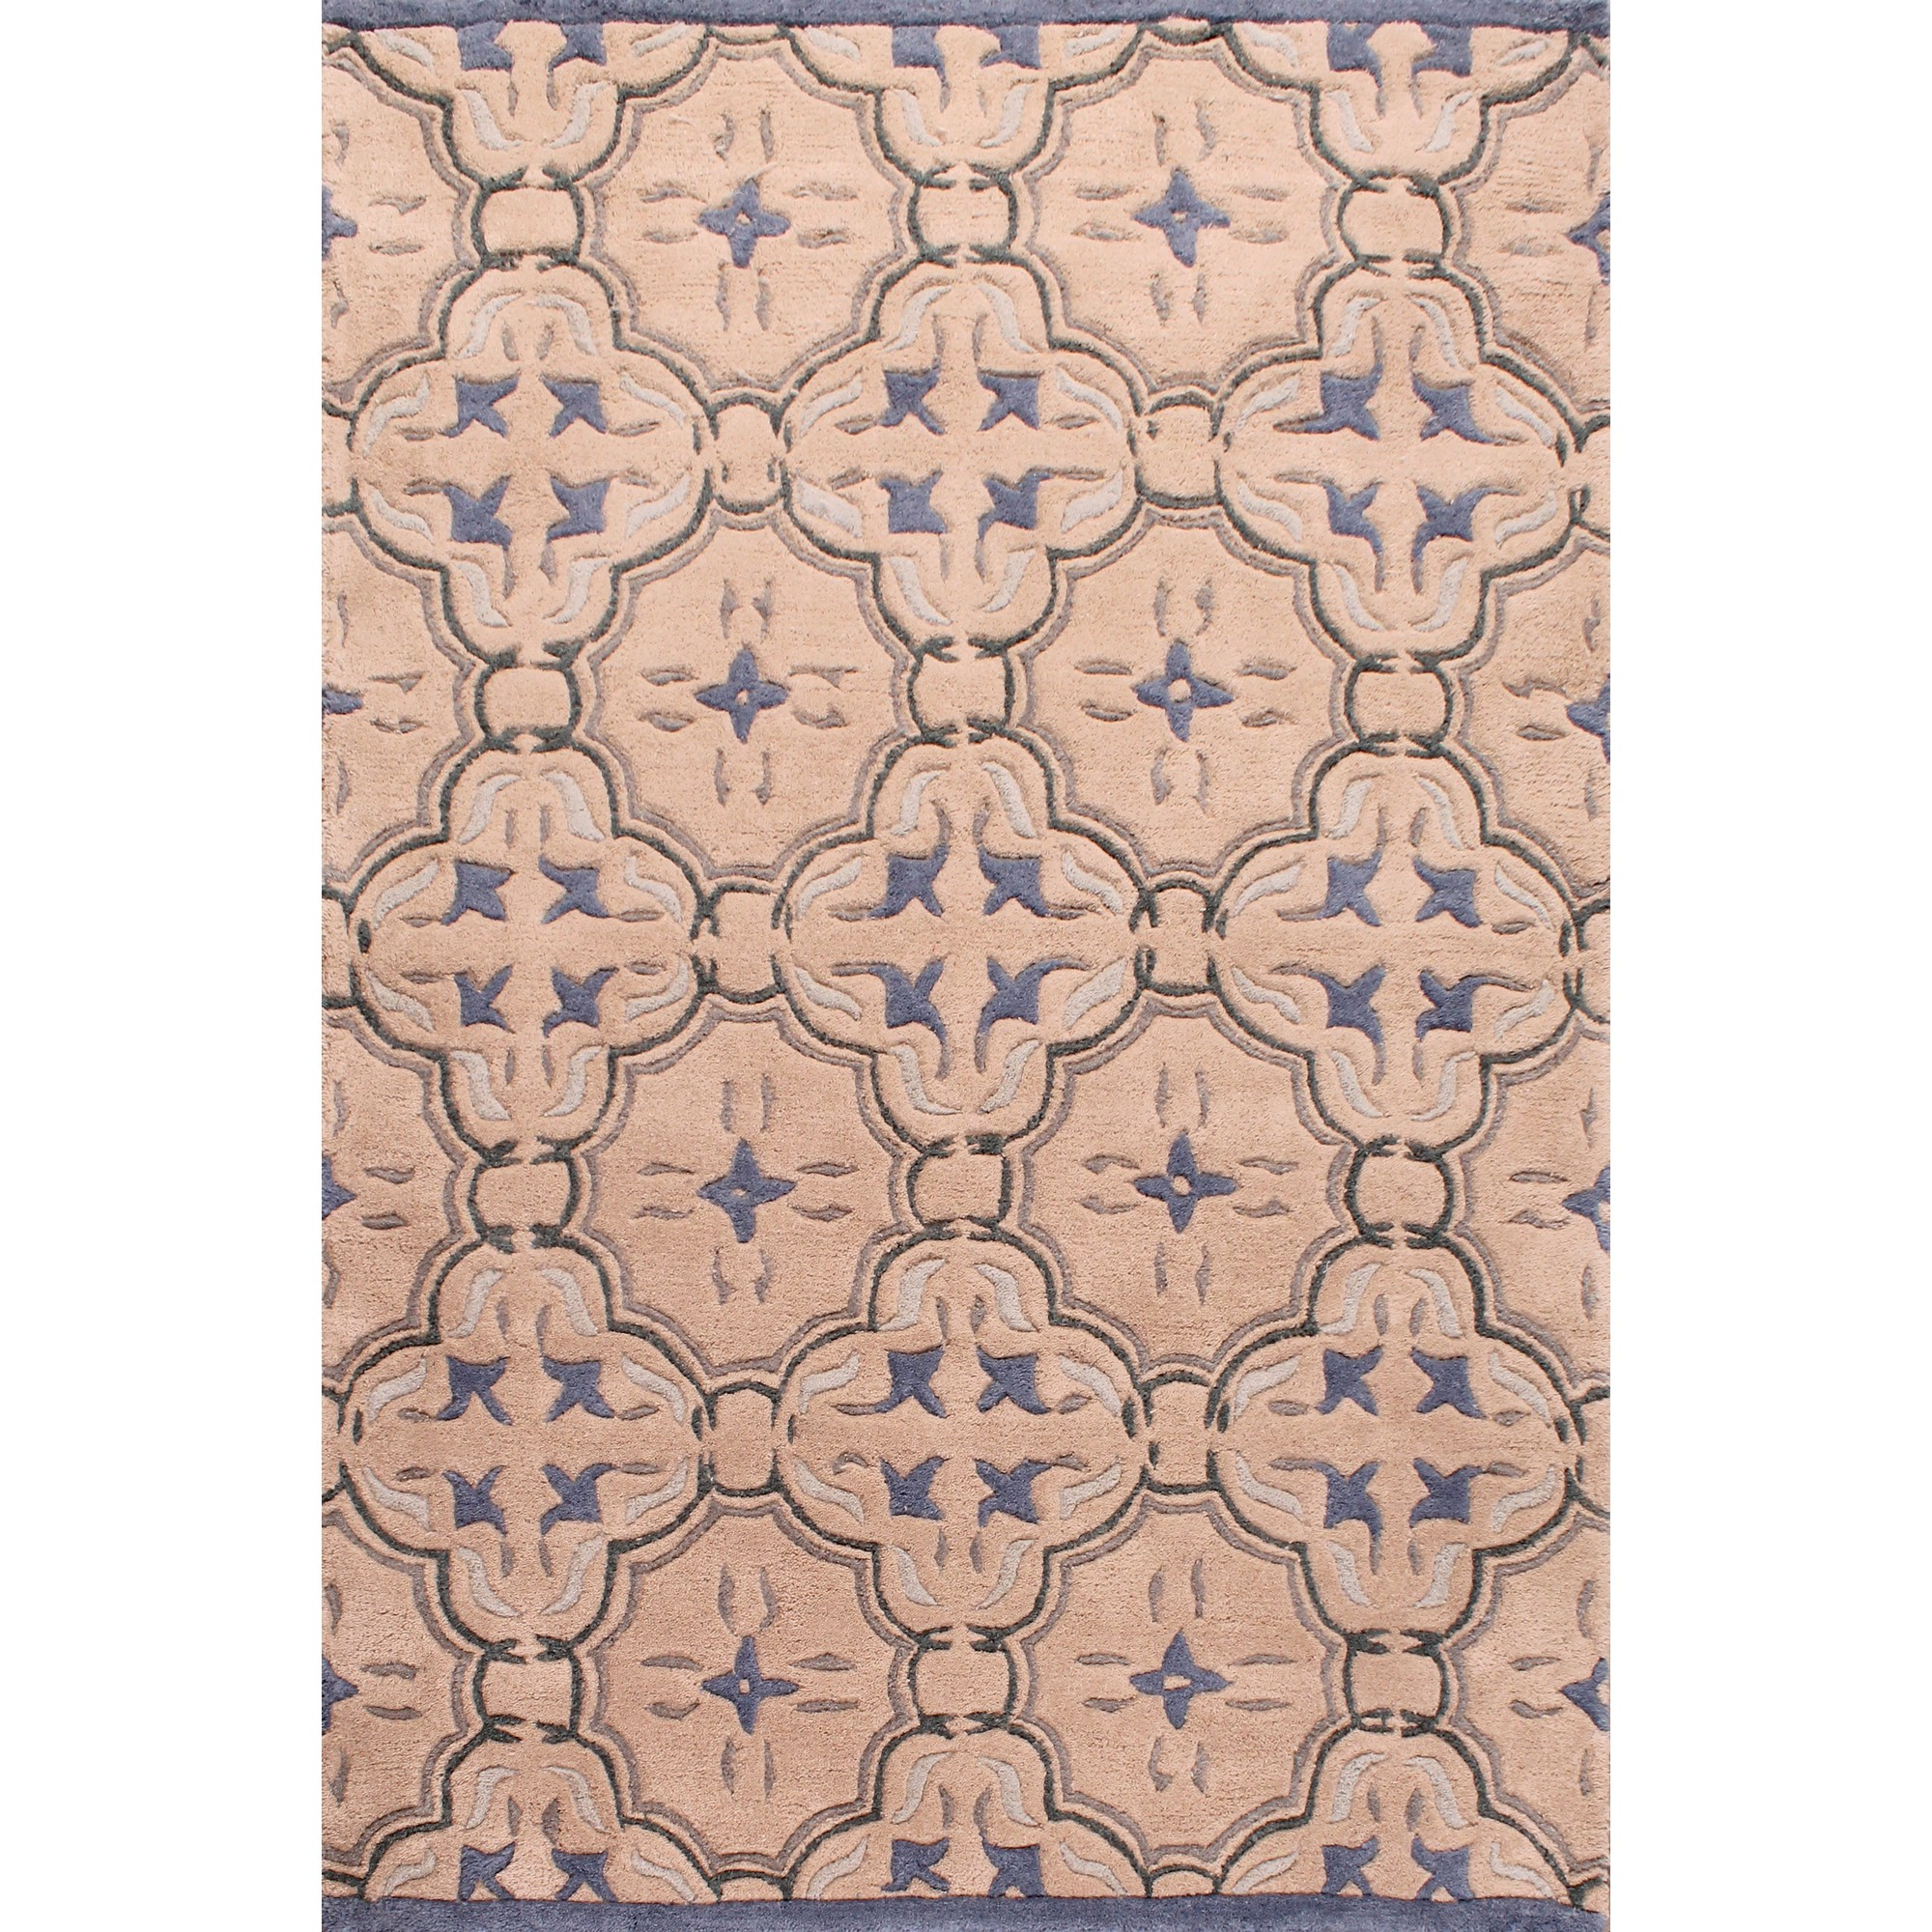 Fusion Aden Rugs in Beige and Blue